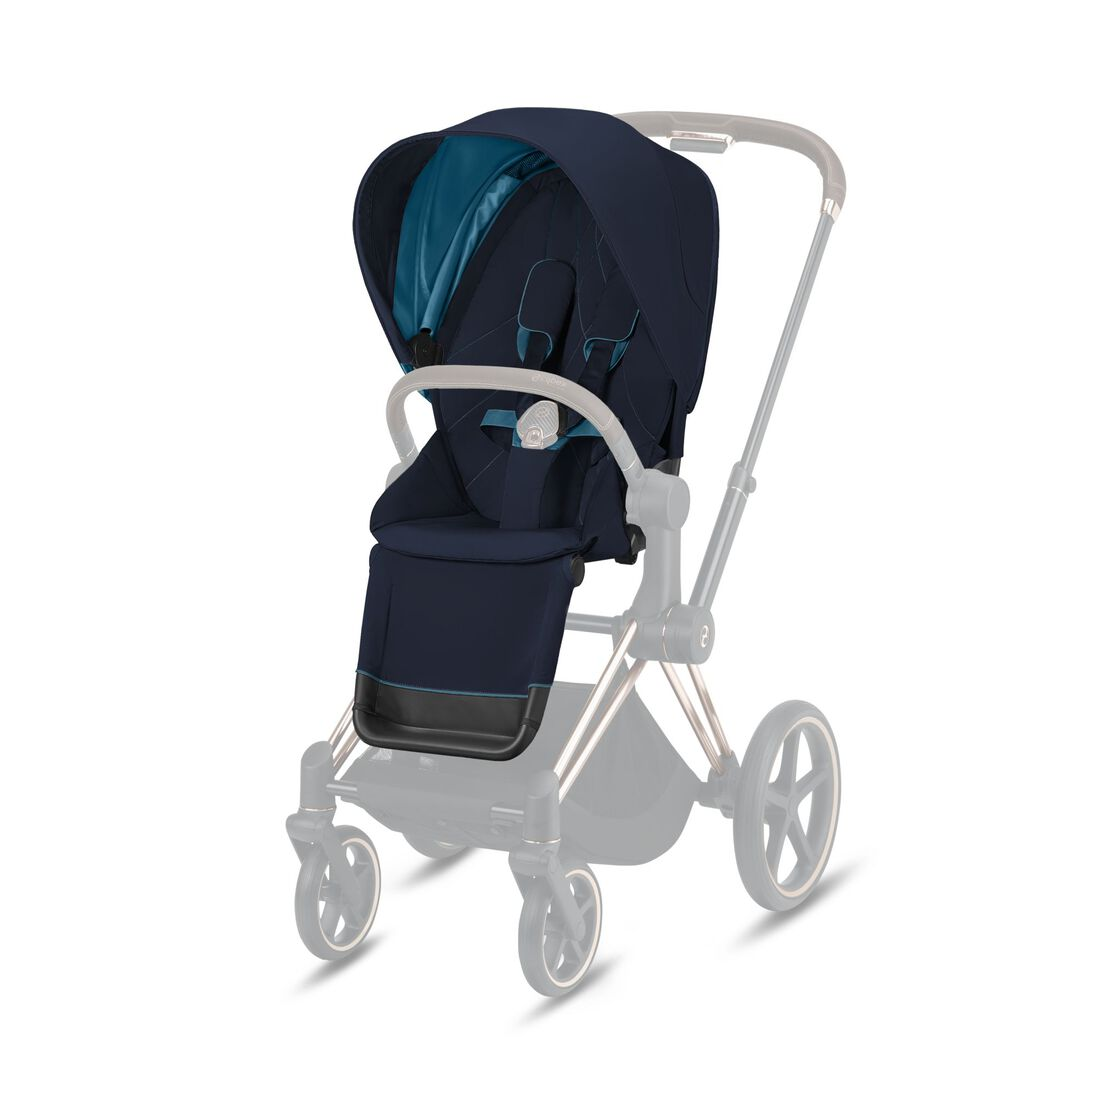 CYBEX Priam Seat Pack - Nautical Blue in Nautical Blue large image number 1